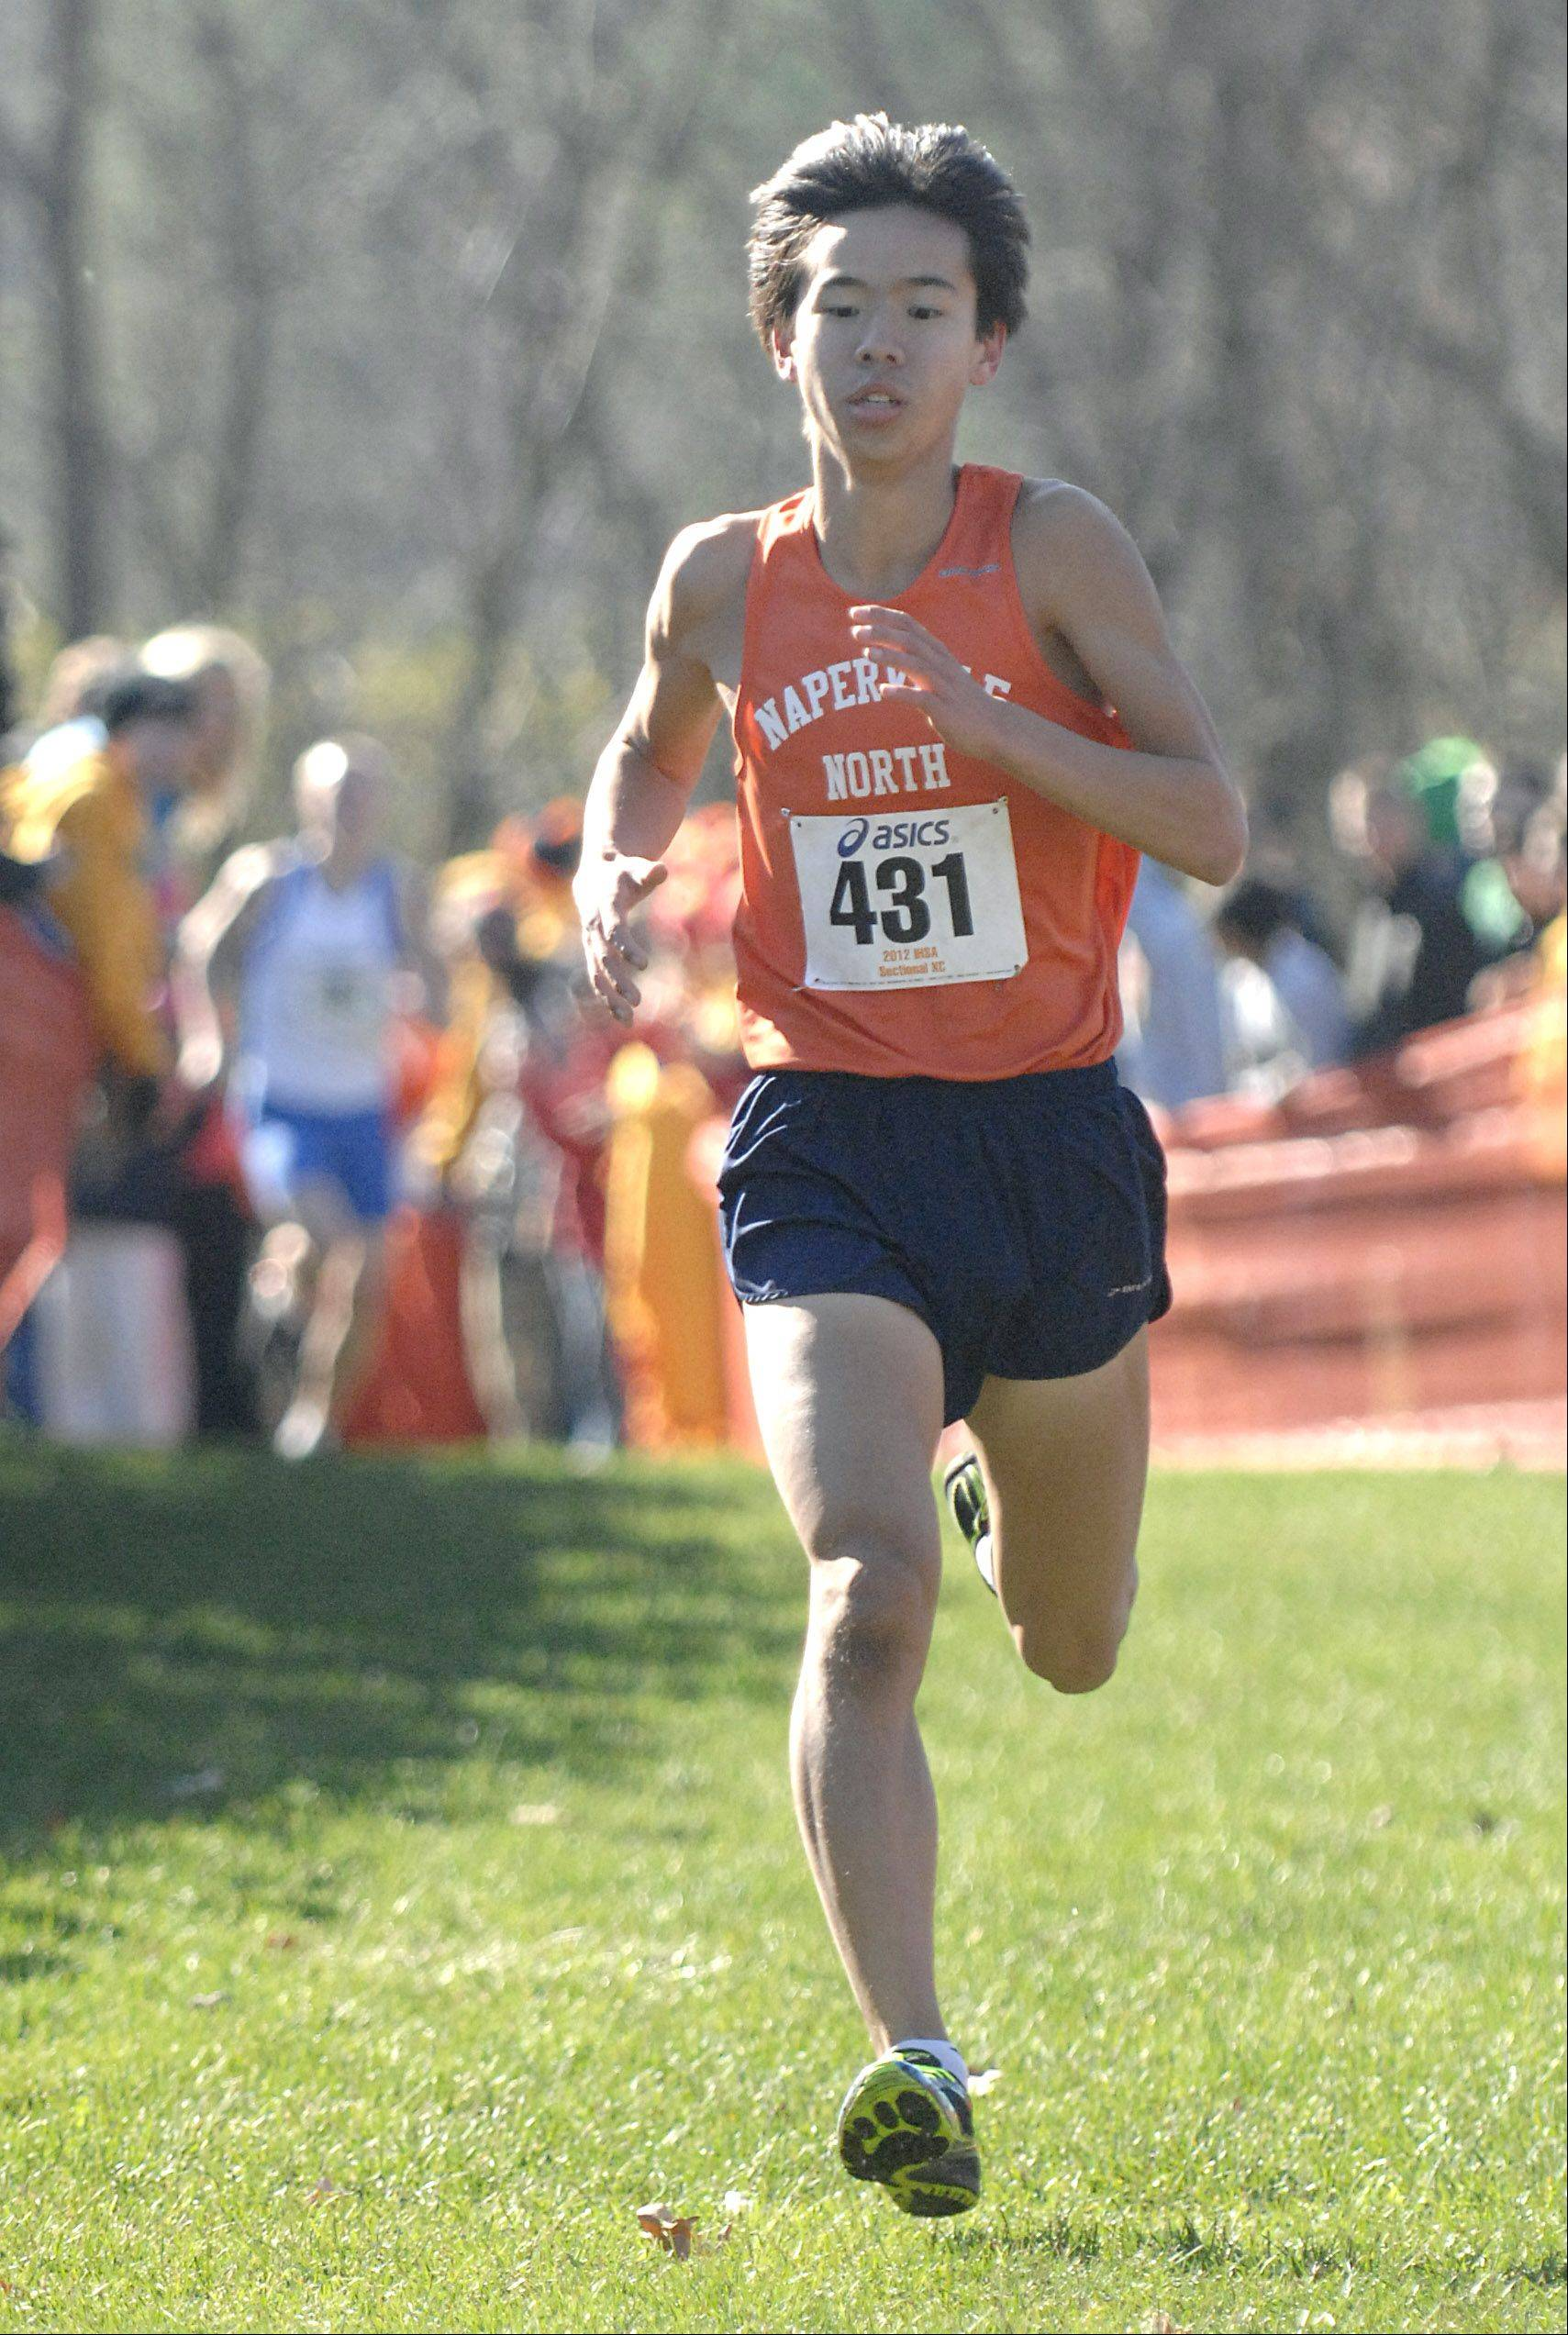 Naperville North's Jimmy Qiao nears the finish line to be the first to cross in the St. Charles East cross country sectional at LeRoy Oakes in St. Charles on Saturday, October 27.